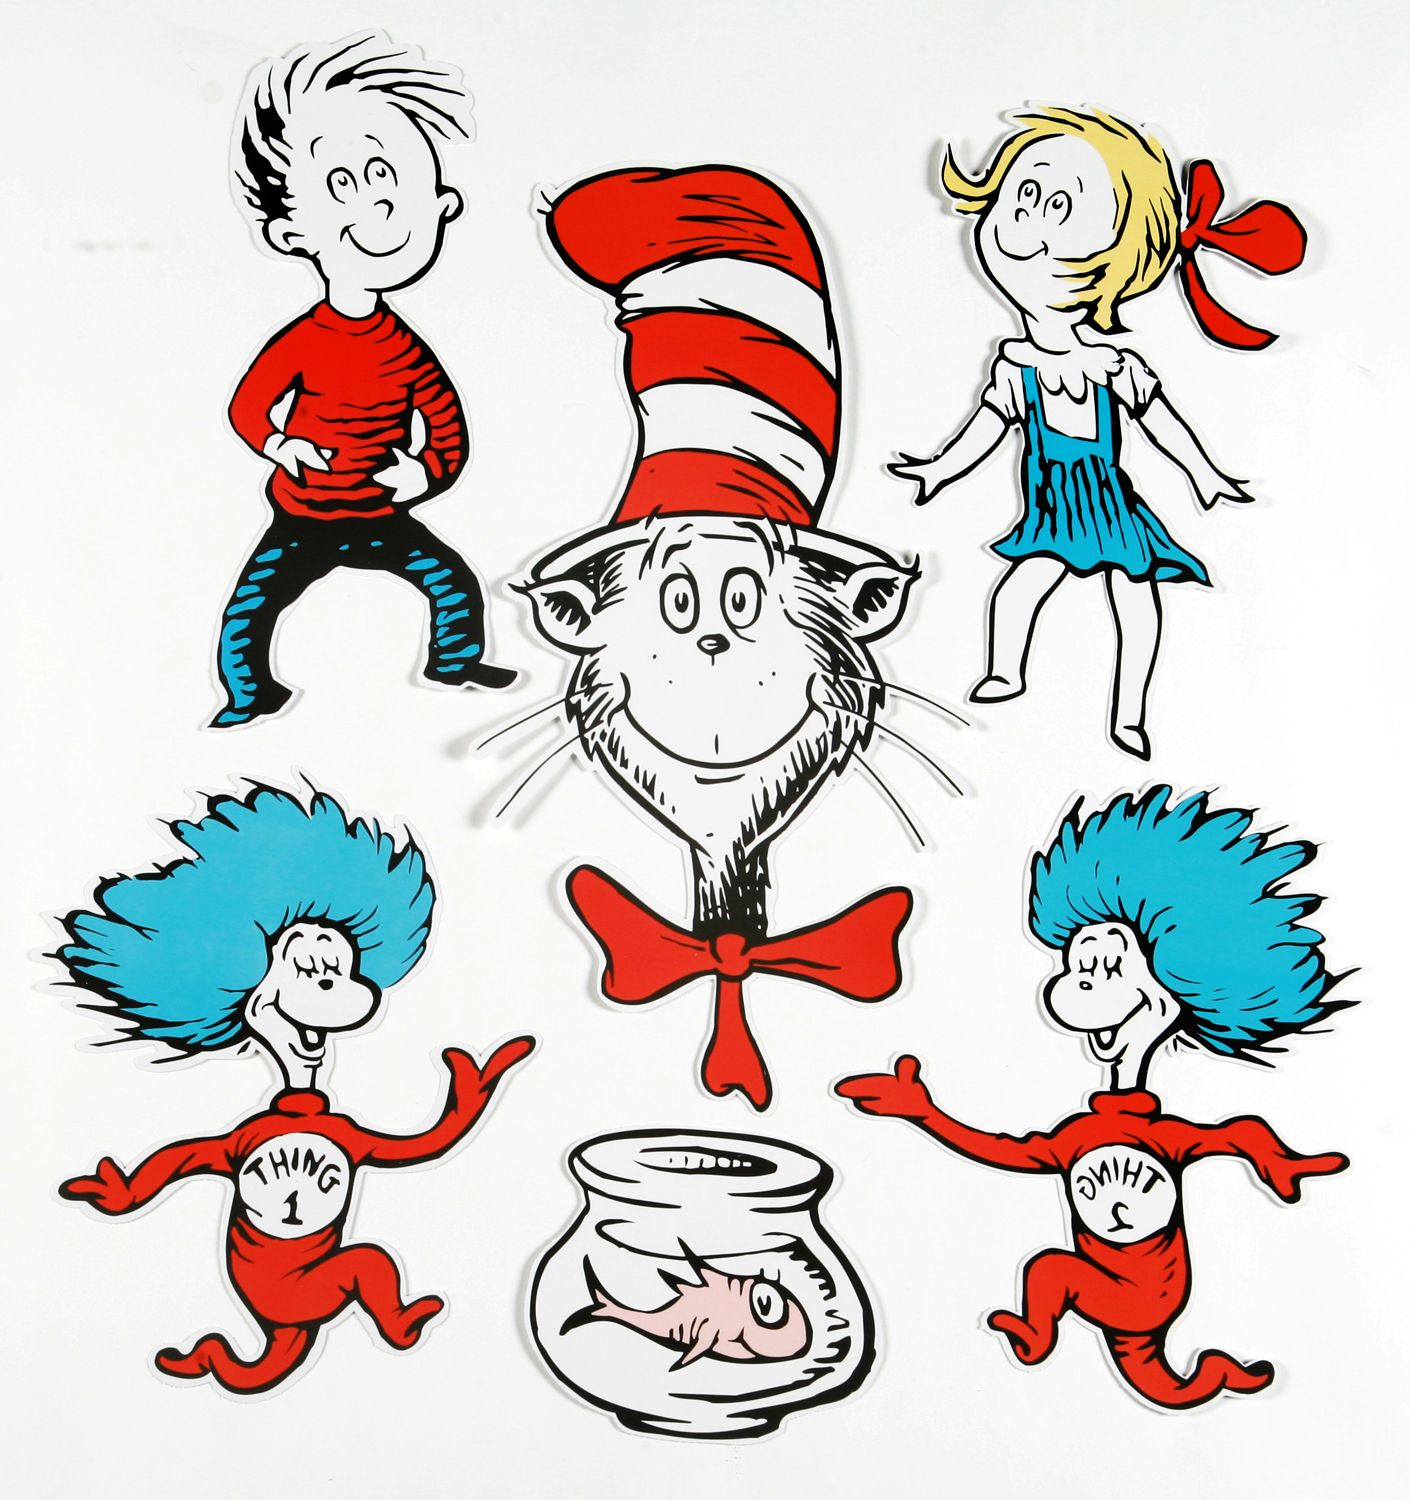 graphic relating to Printable Dr Seuss Characters identify Dr. Seuss People Heavy Dr. Seuss Figures 2-Sided